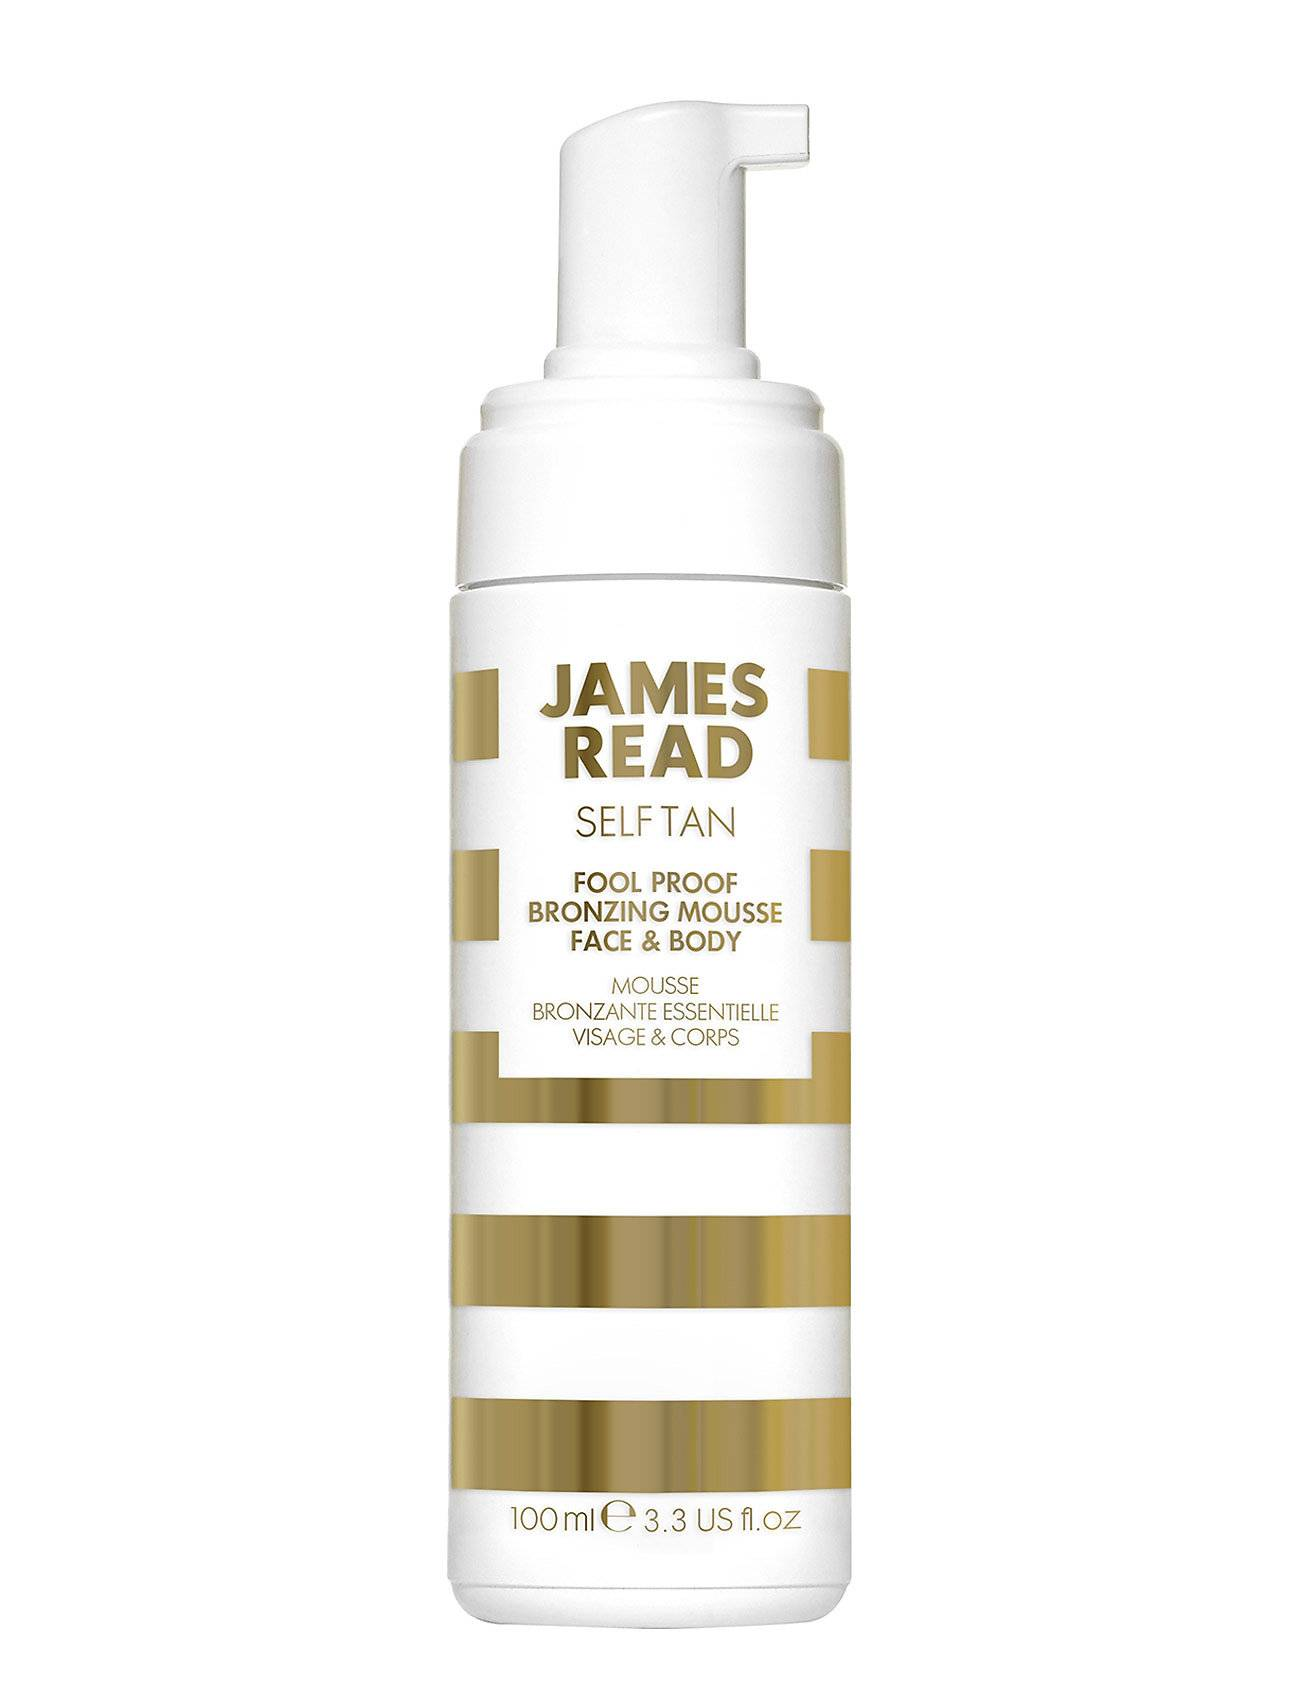 James Read Fool-Proof Bronzing Mousse Face  Body